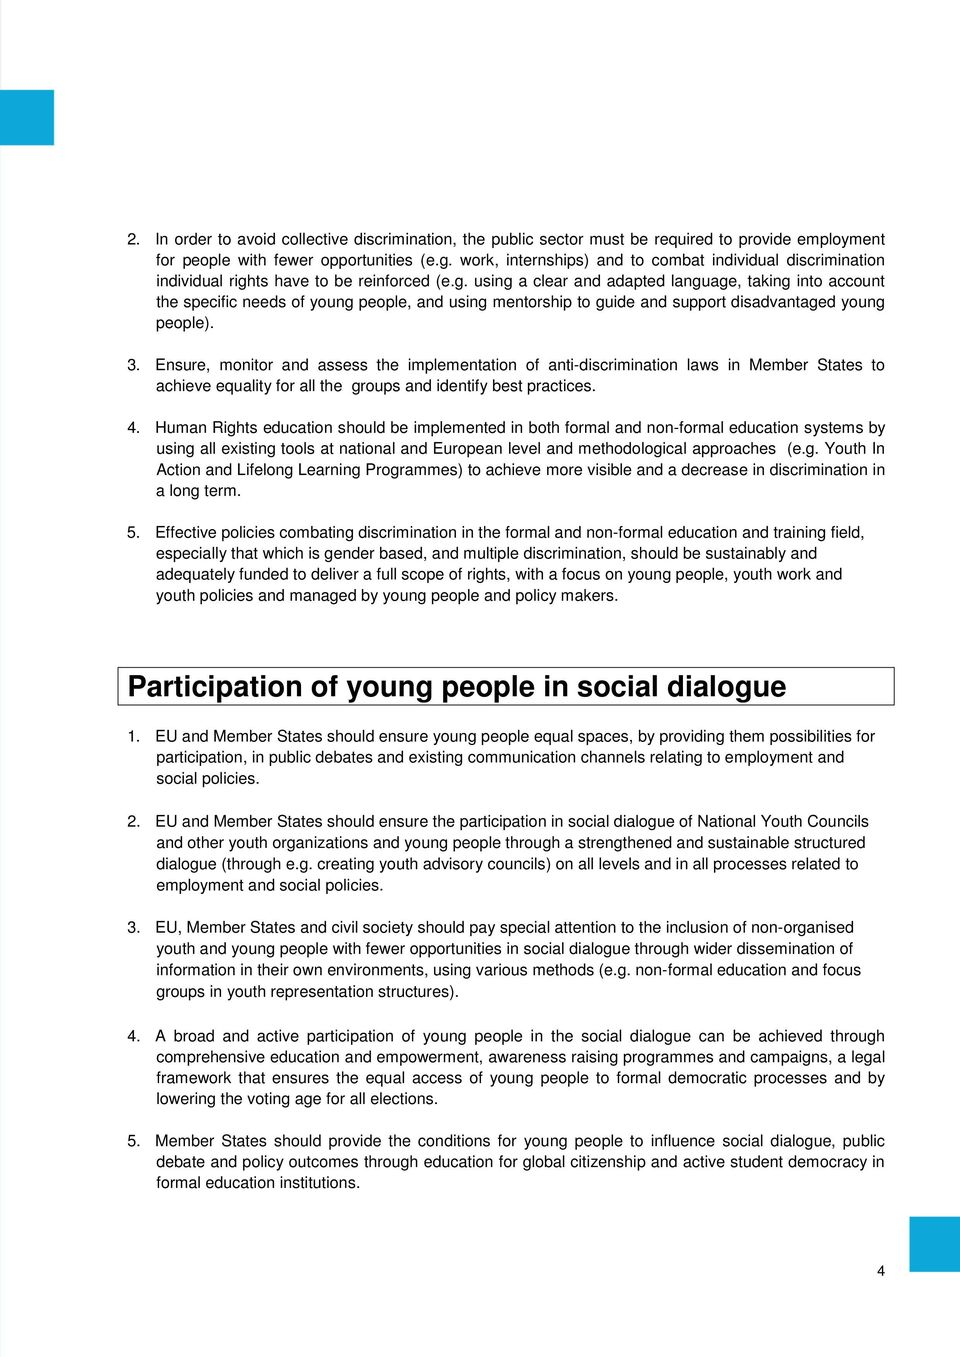 ts have to be reinforced (e.g. using a clear and adapted language, taking into account the specific needs of young people, and using mentorship to guide and support disadvantaged young people). 3.